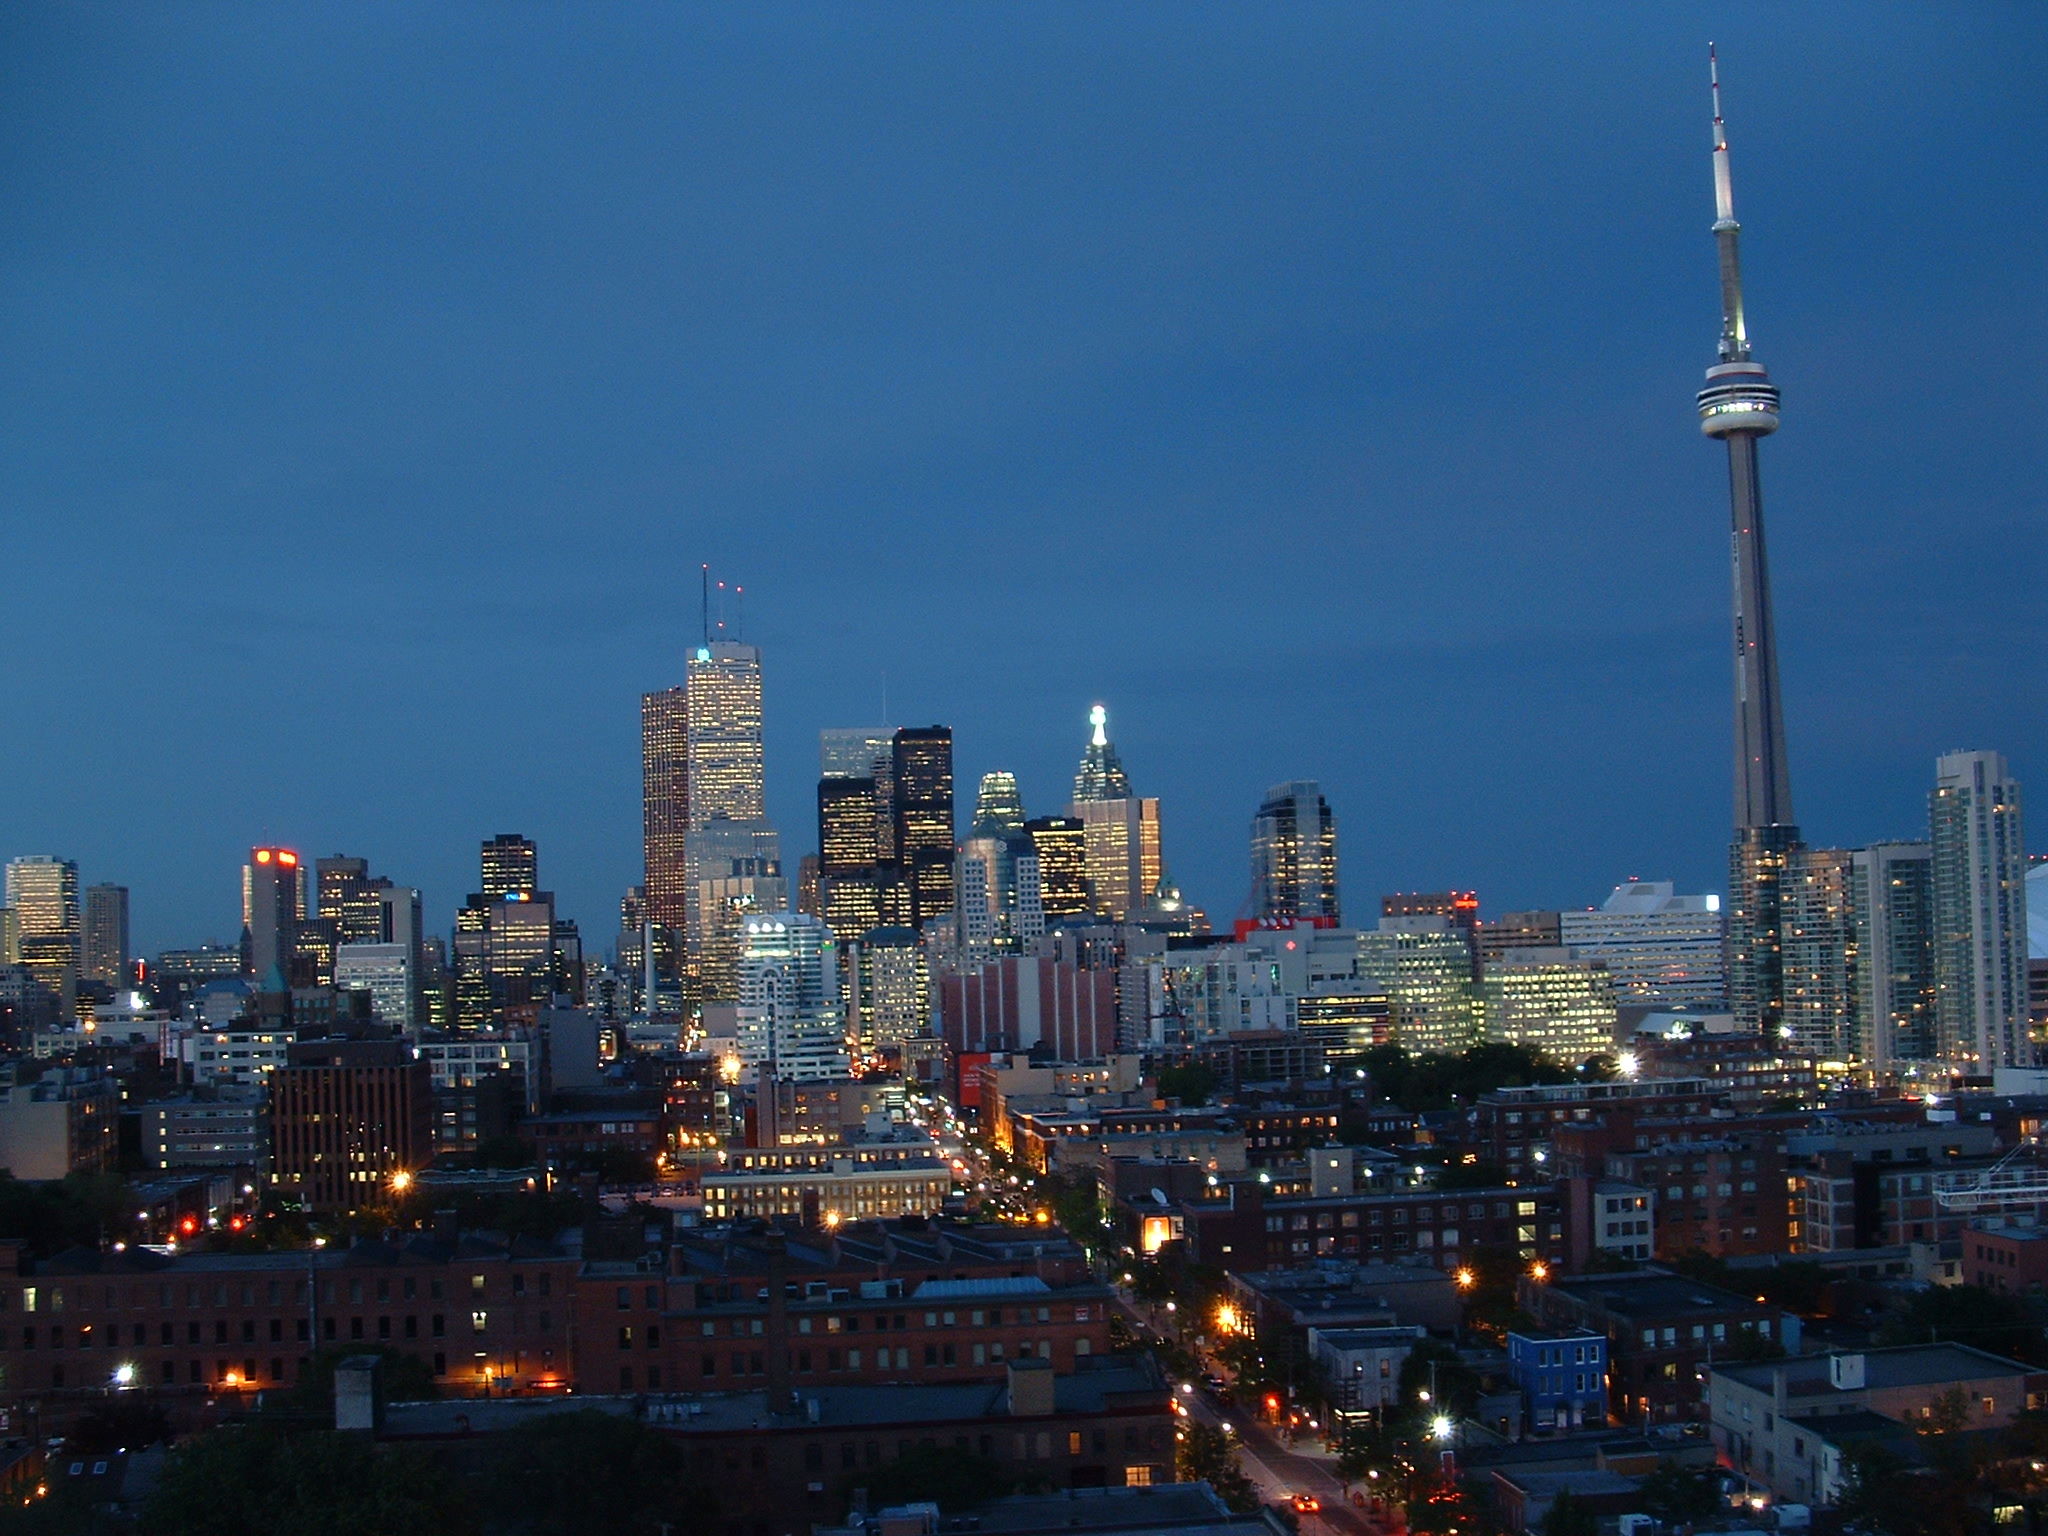 Toronto Evening Skyline | The skyline of Downtown Toronto ta ...